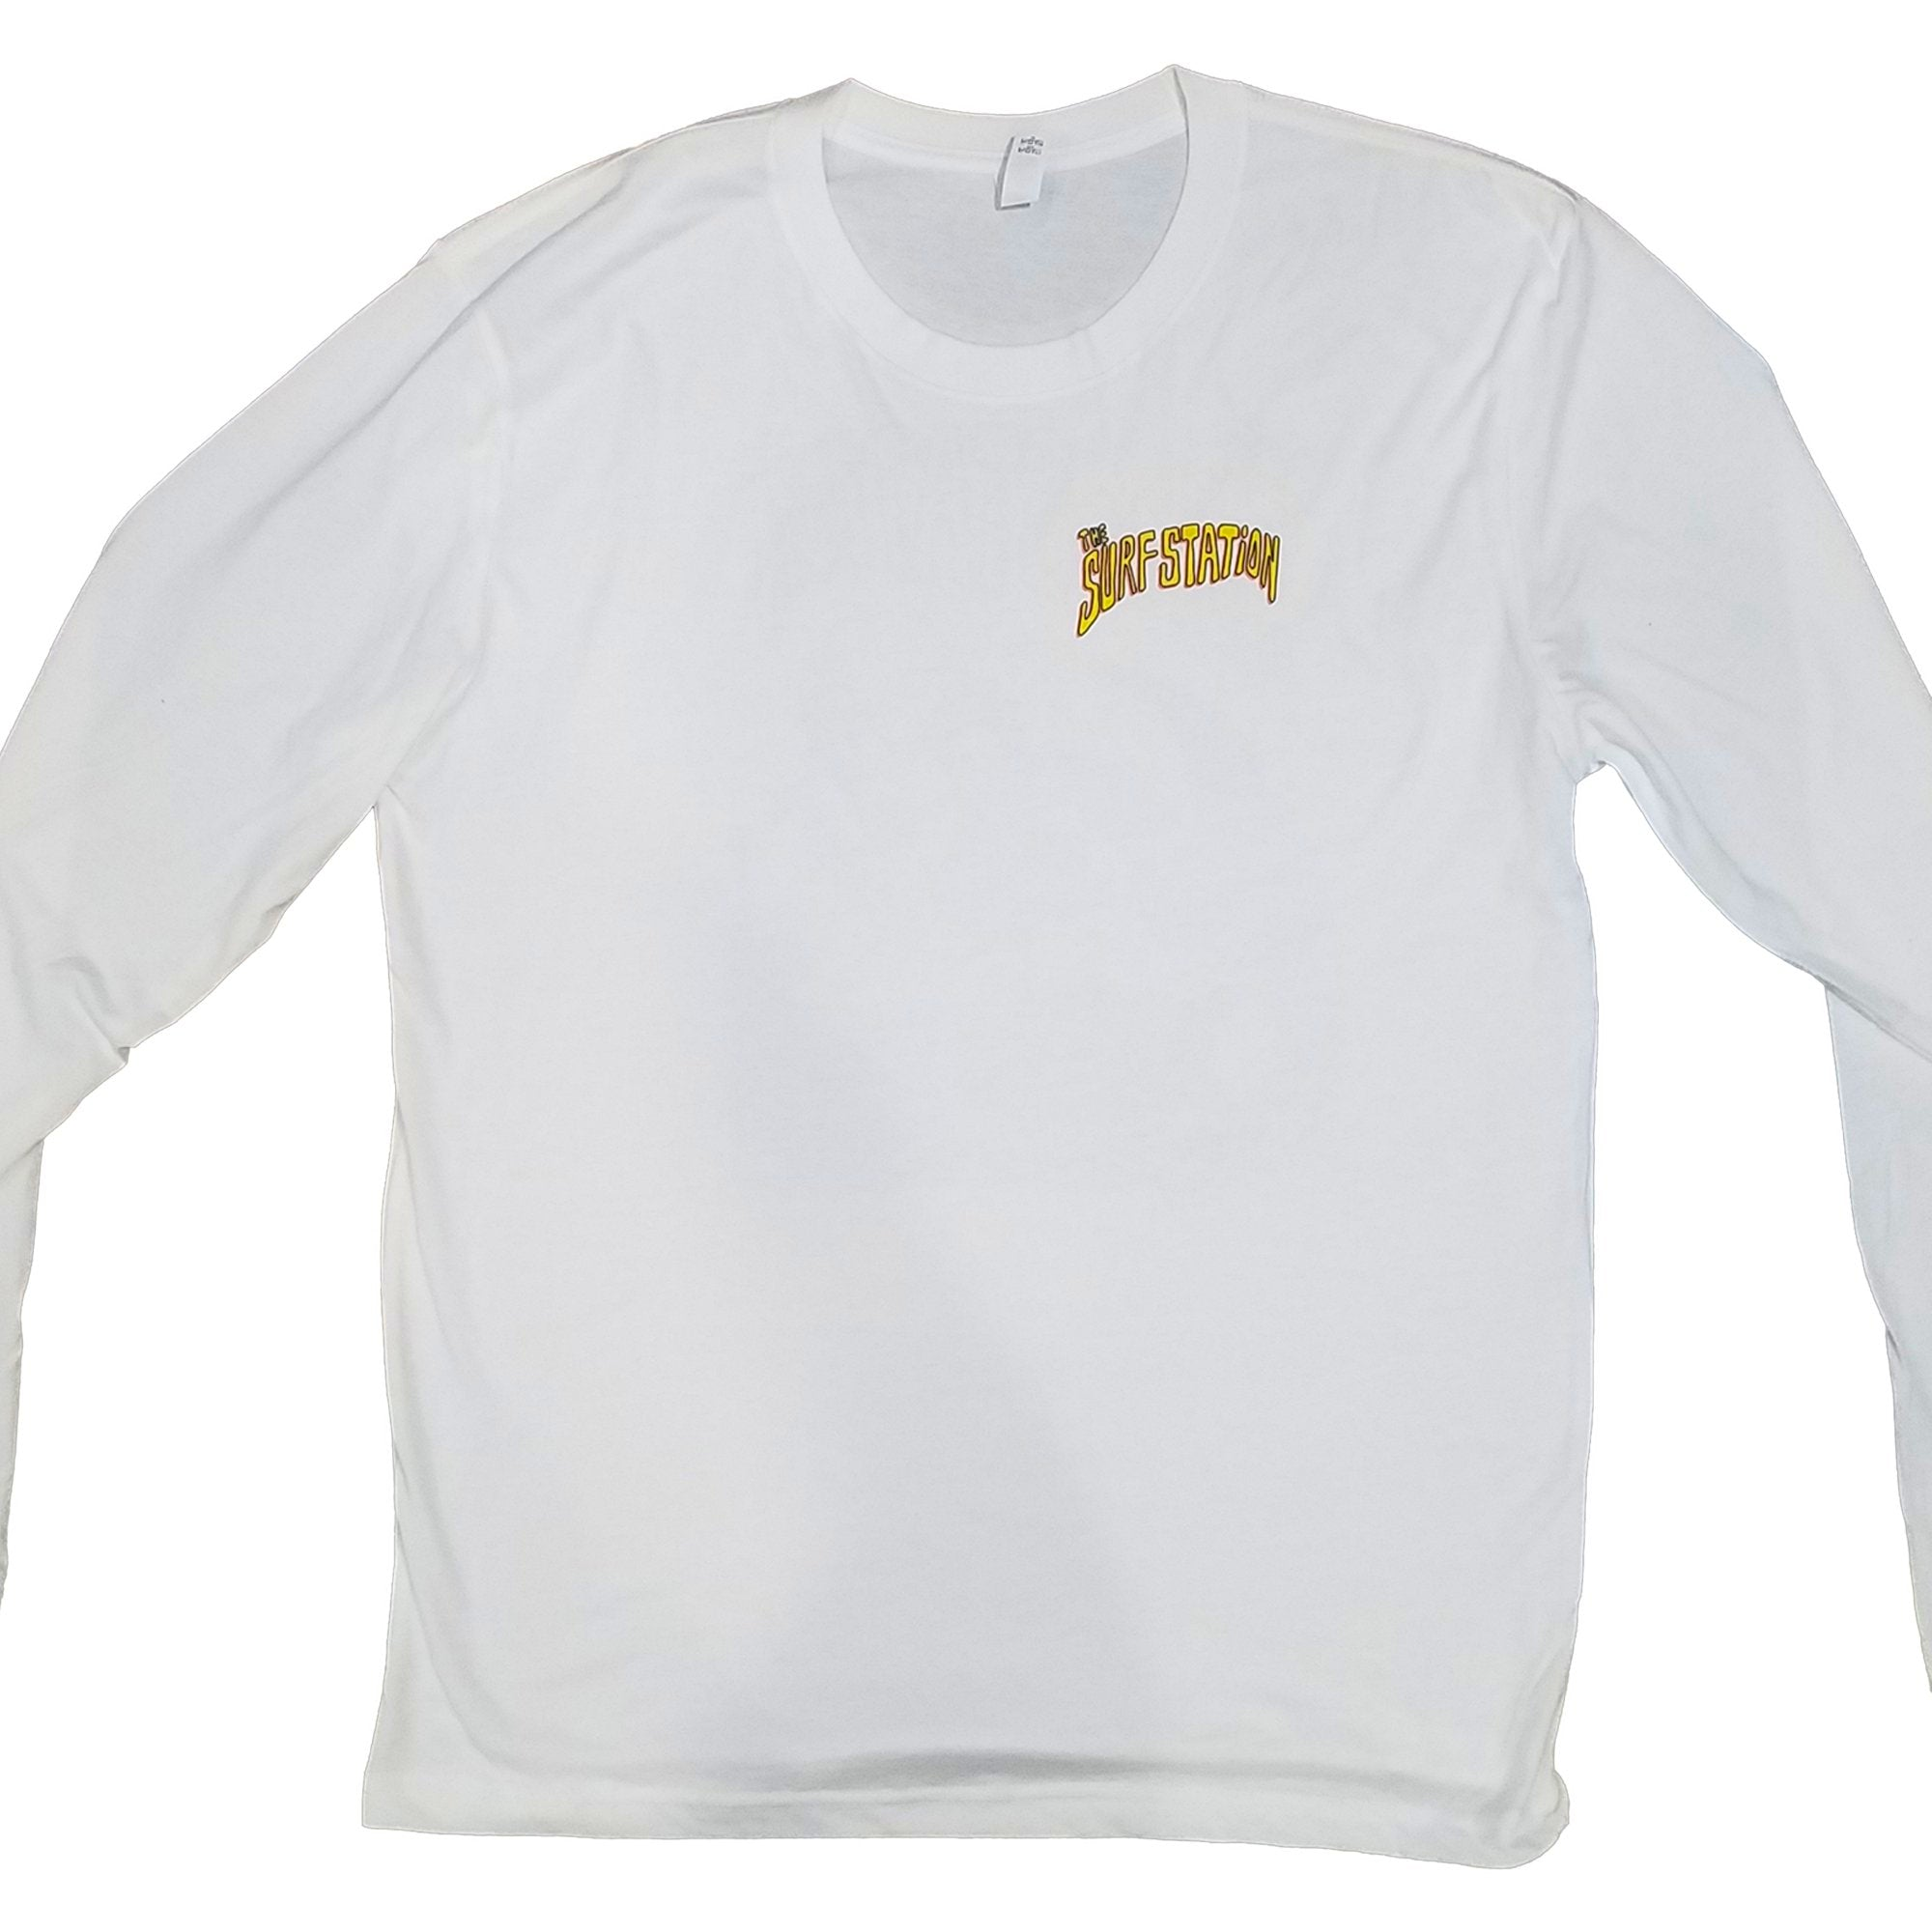 Surf Station Skeleton Gator Youth Boy's L/S T-Shirt